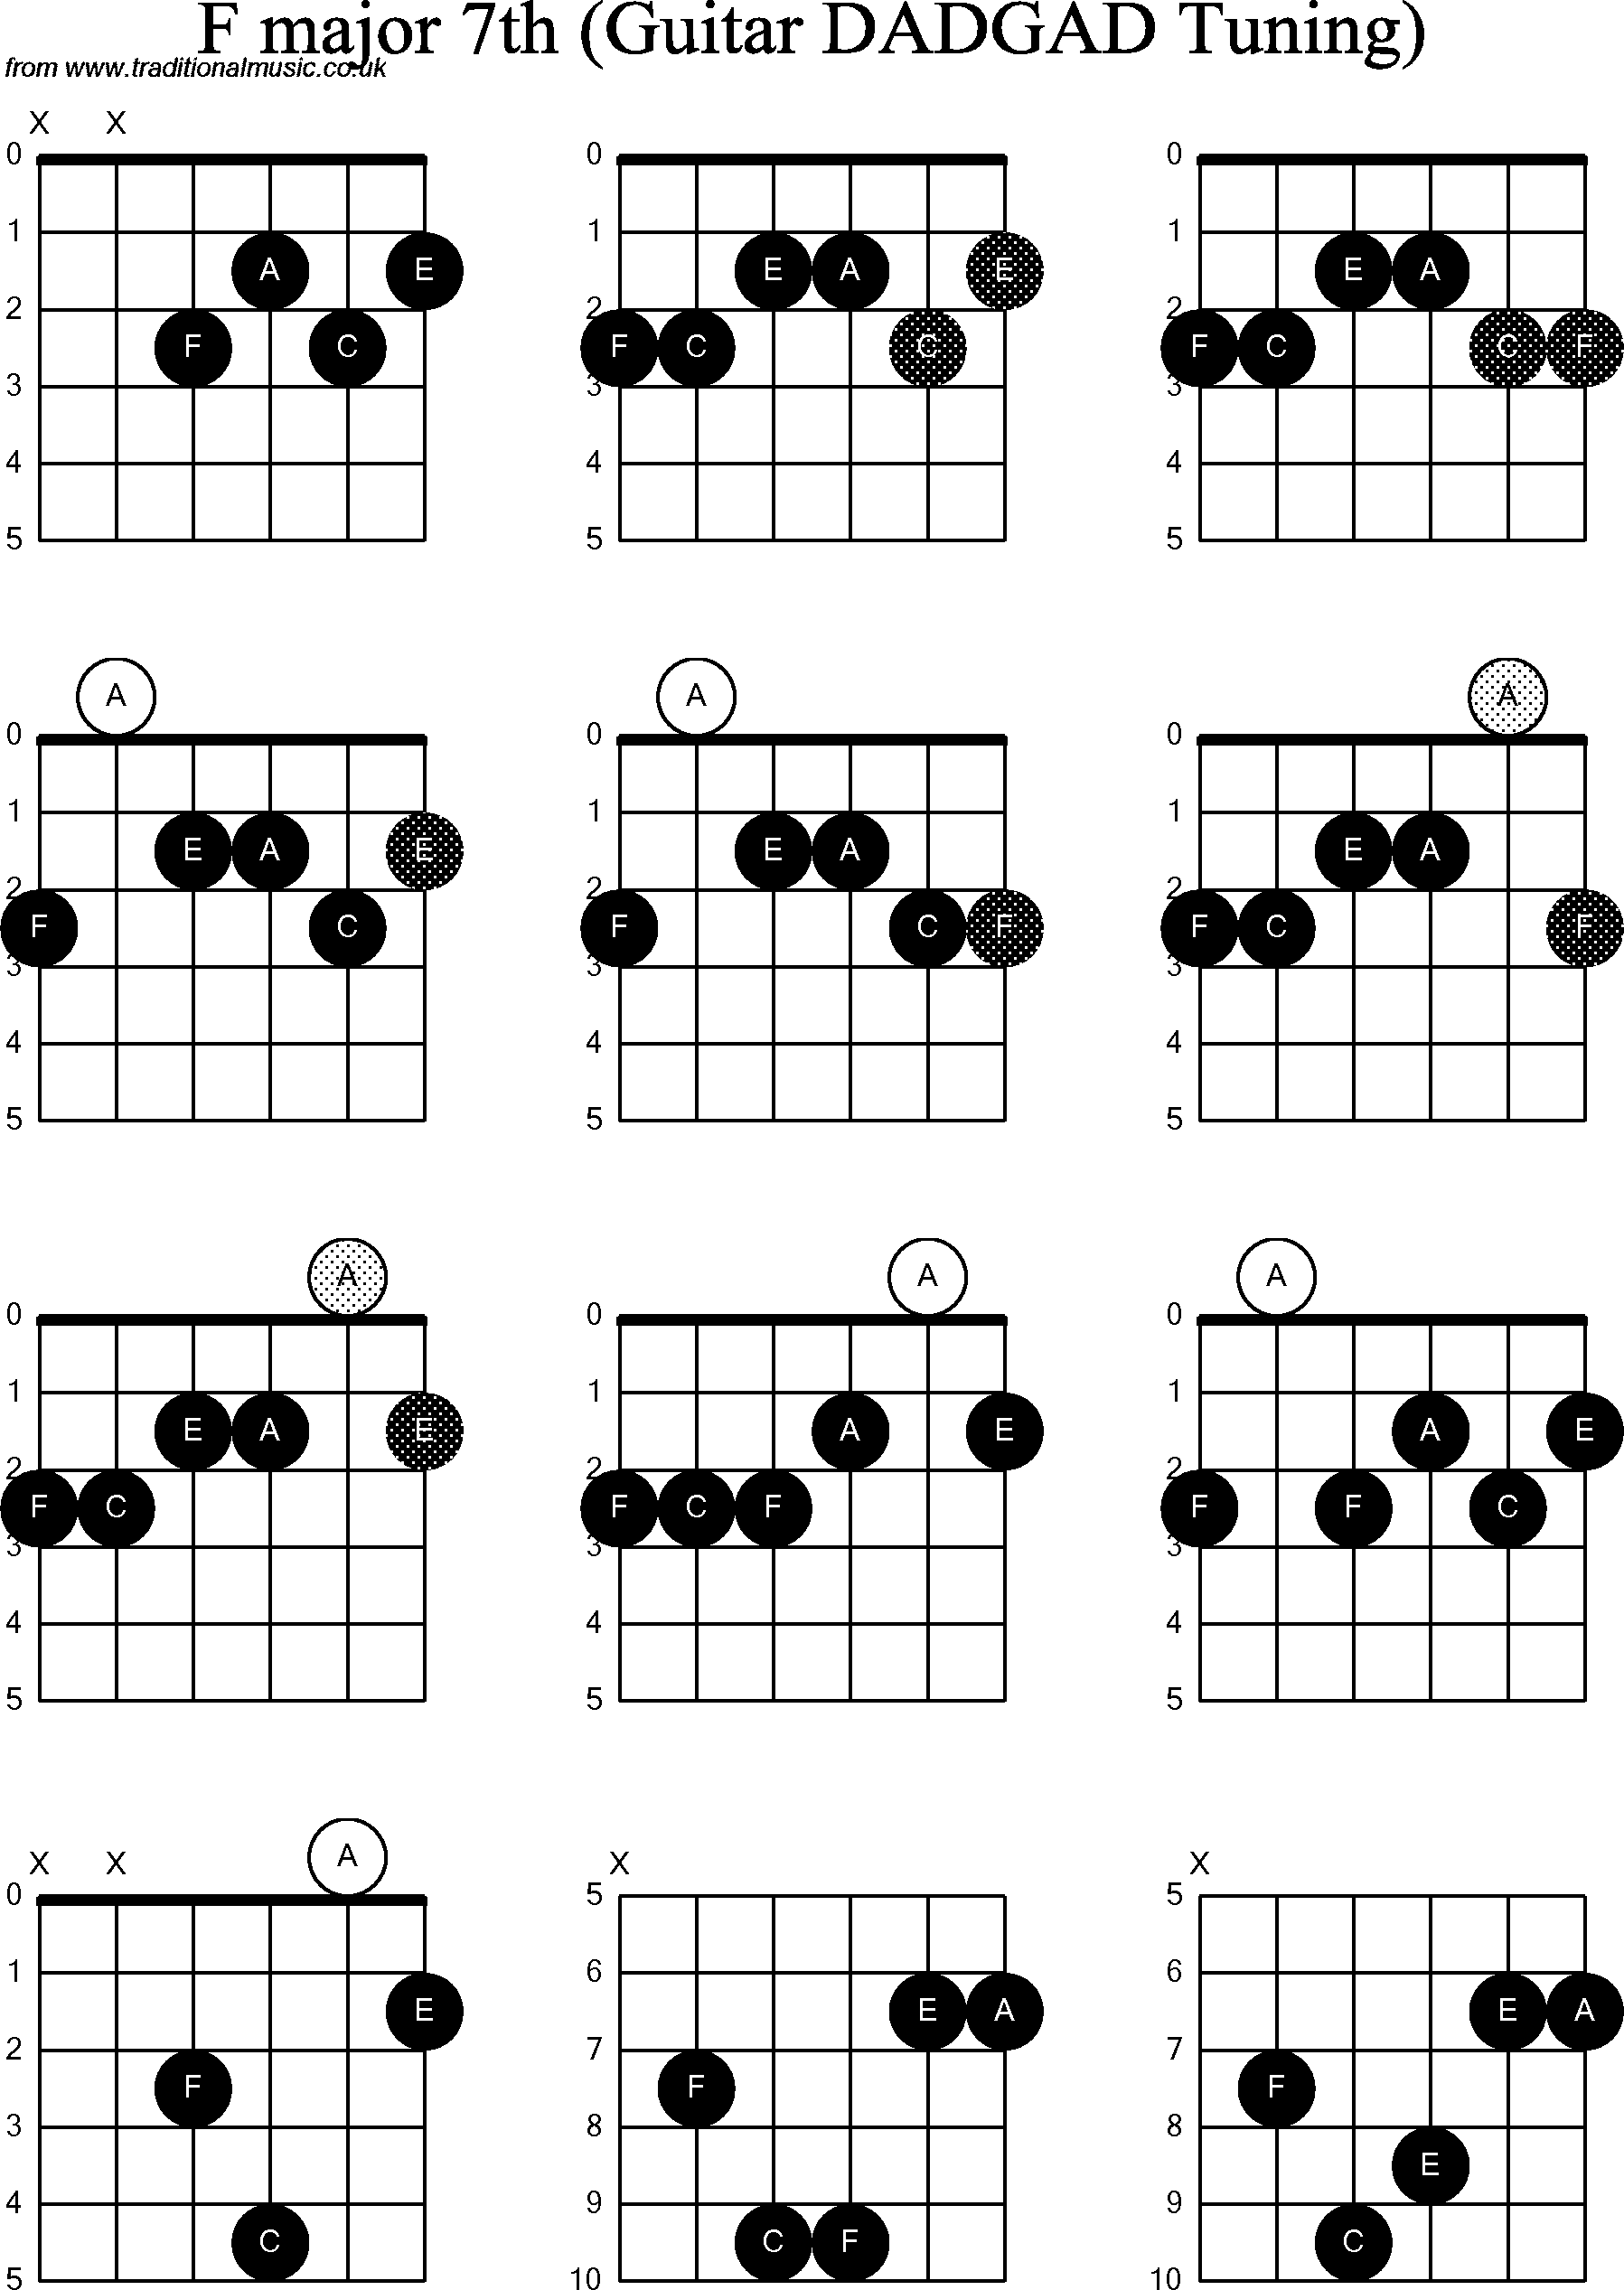 chord diagrams d modal guitar  dadgad   f major7th